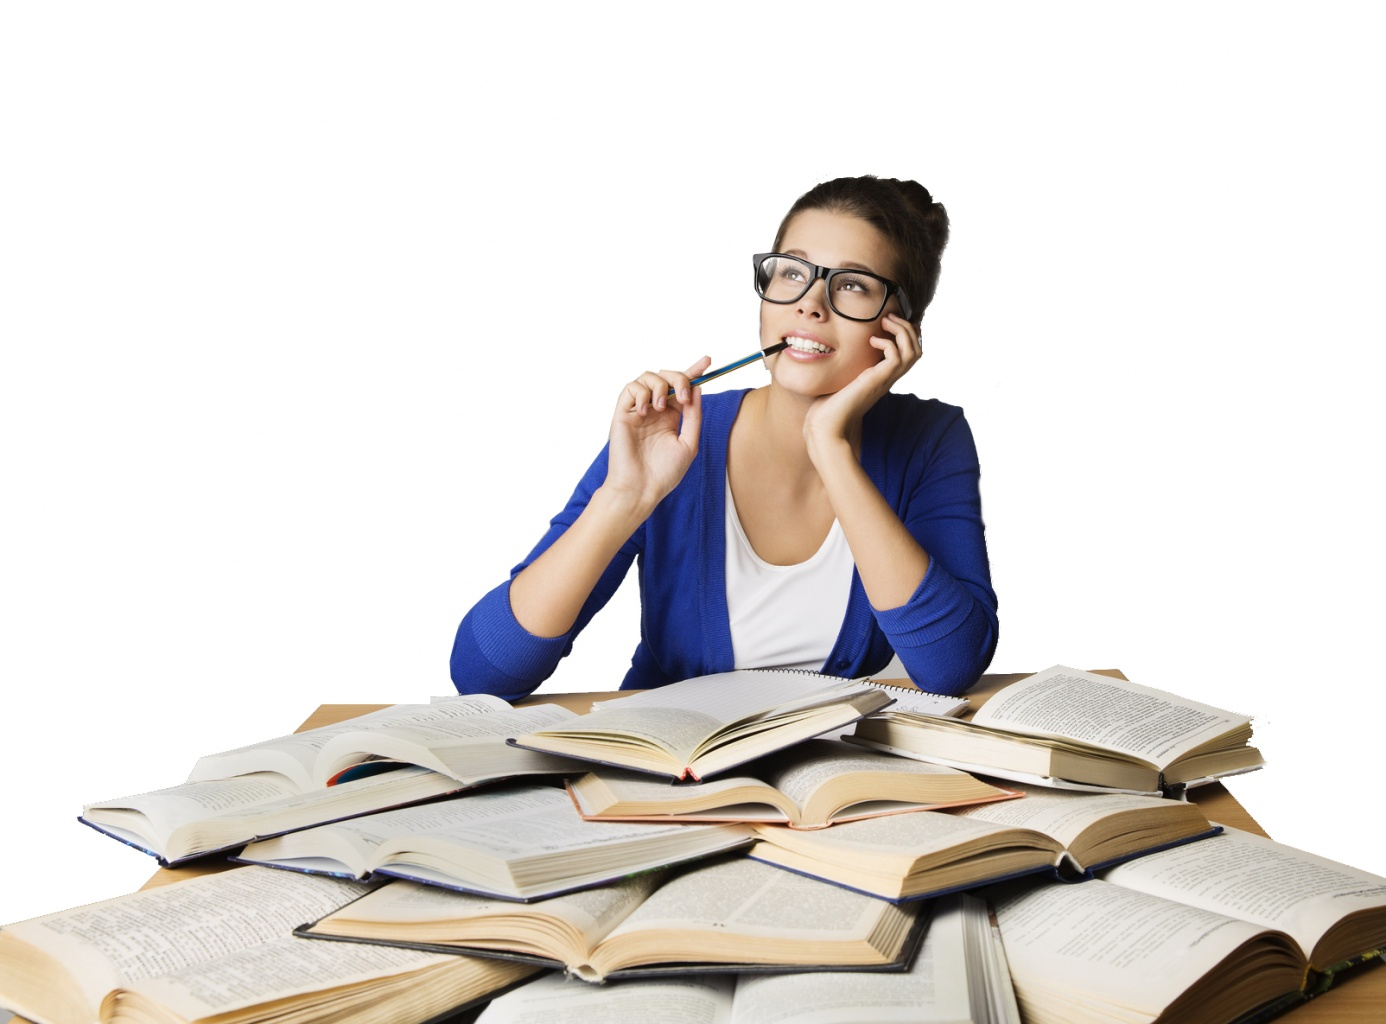 Student Thinking Open Books, Pondering Girl in Glasses Learning Exam, Studying Woman Looking Up over Gray background